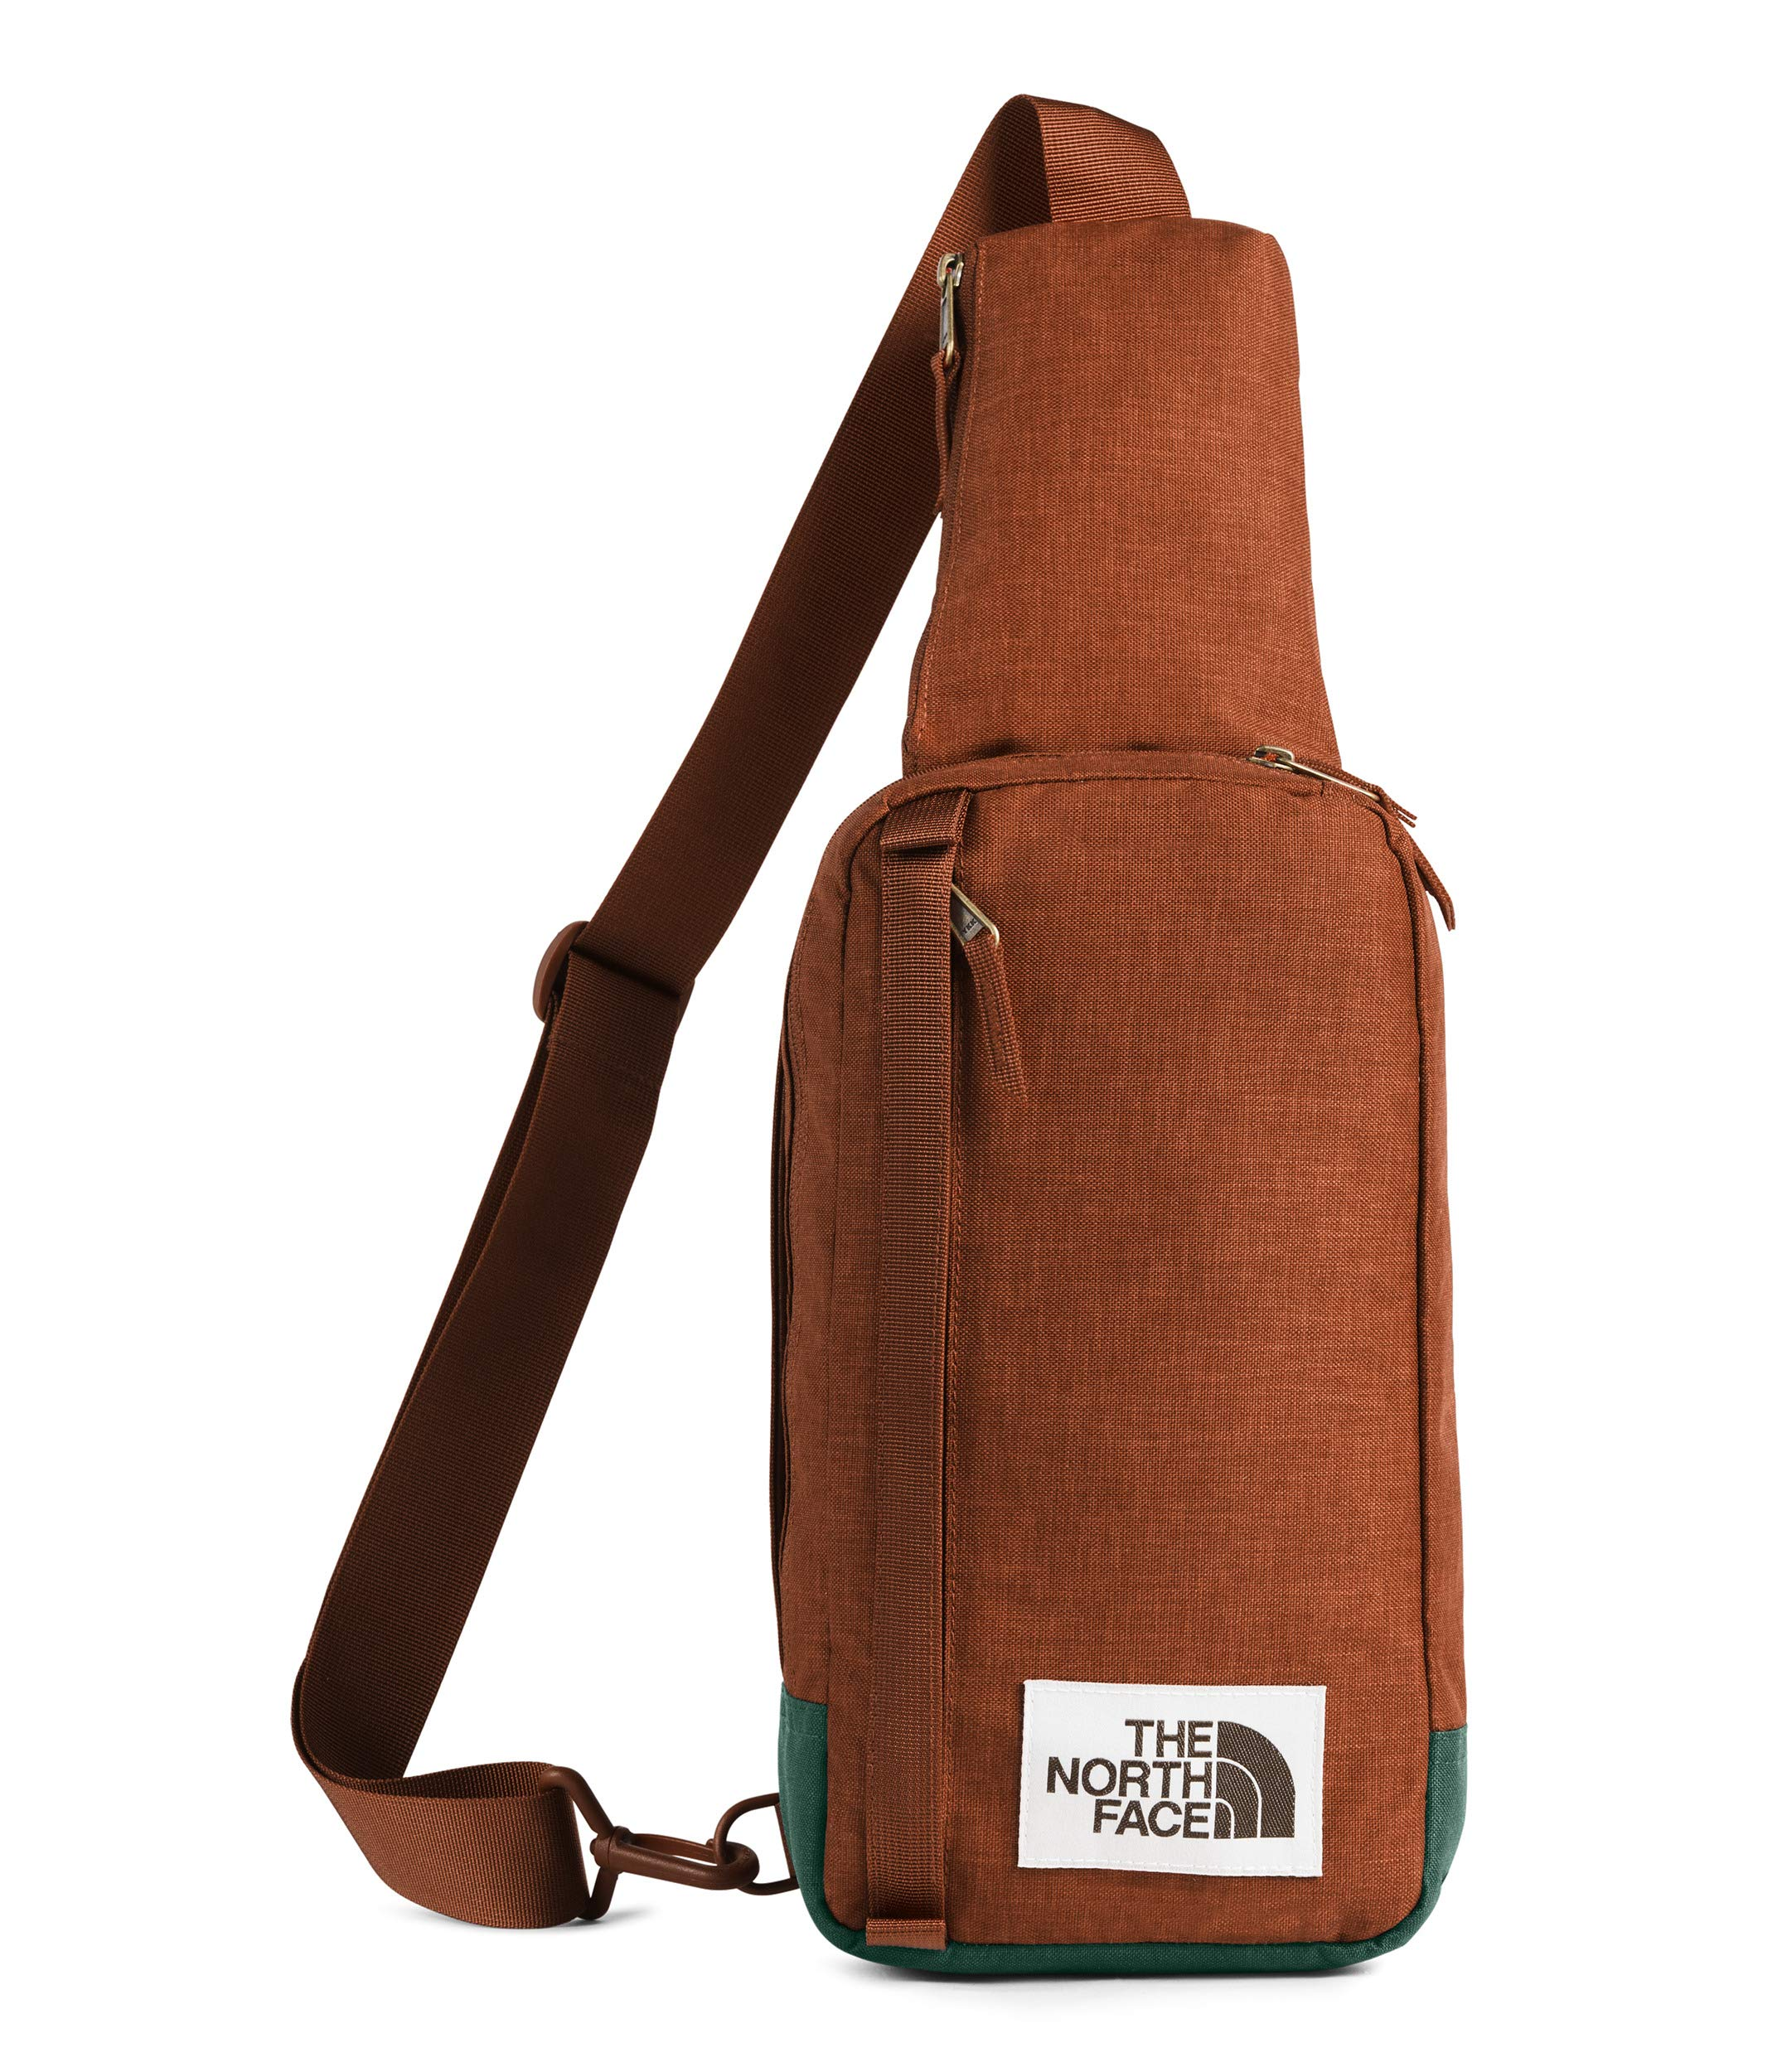 The North Face Field Bag, Picante Red Dark Heather/Night Green Light Heather, OS by The North Face